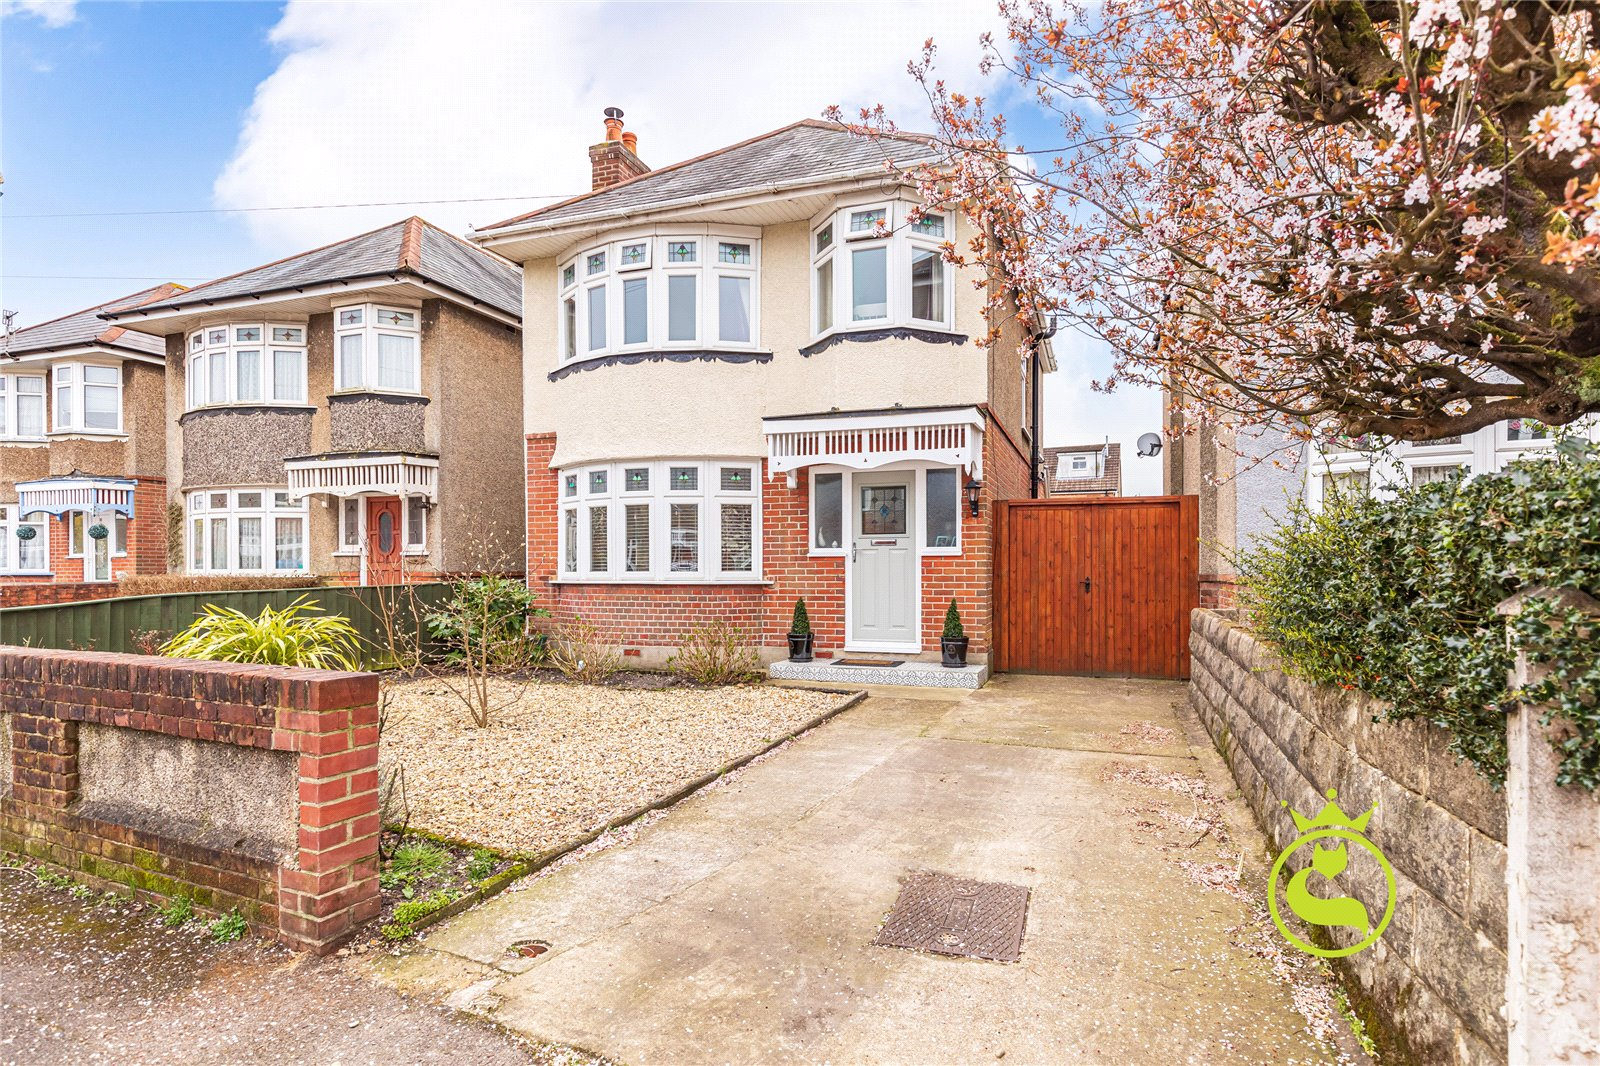 3 bed house for sale in Pearson Avenue, Lower Parkstone - Property Image 1